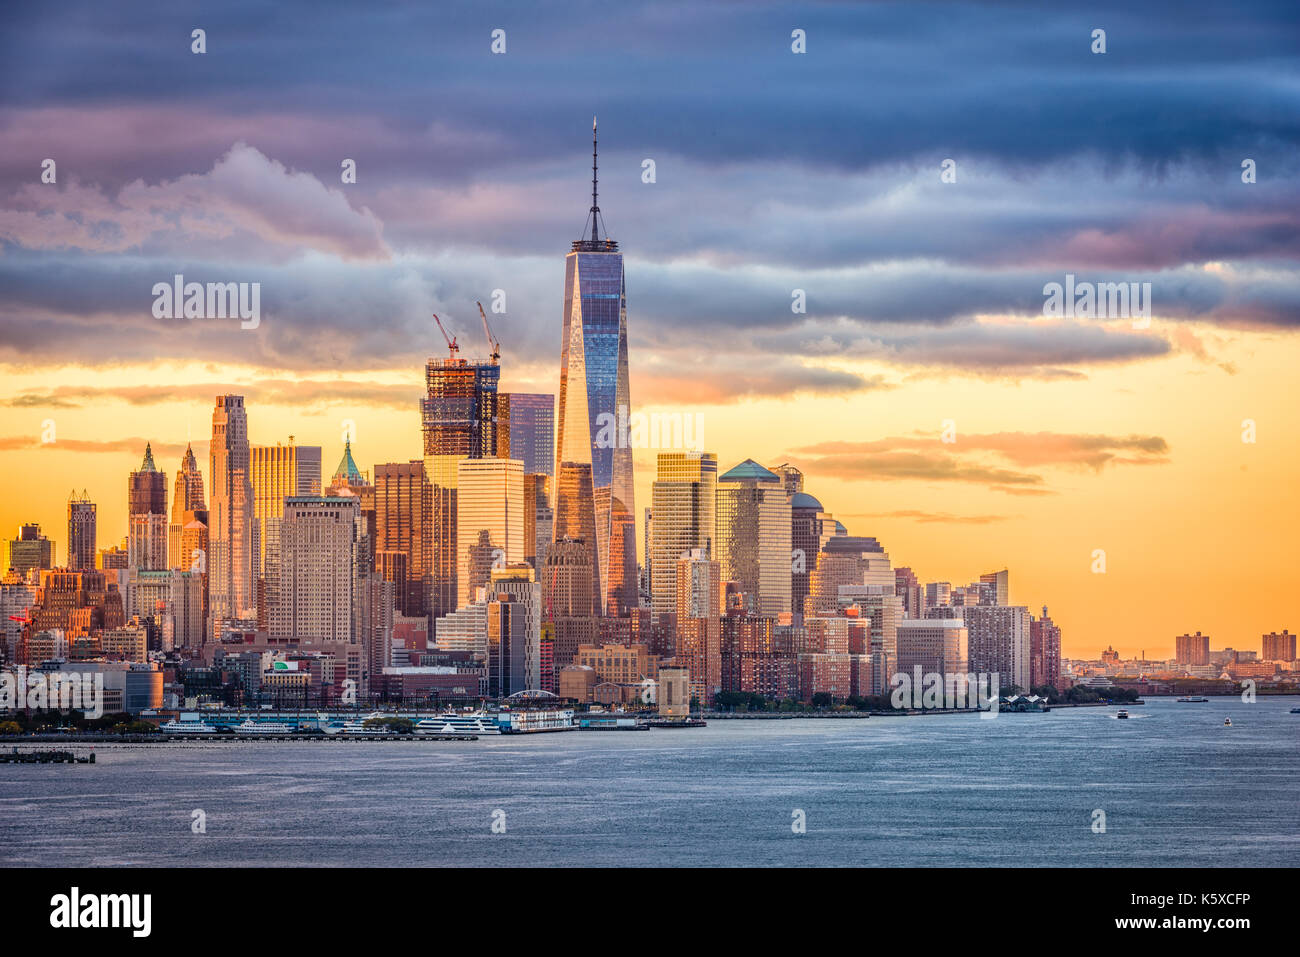 Le quartier financier de la ville de New York sur la rivière Hudson à l'aube. Photo Stock